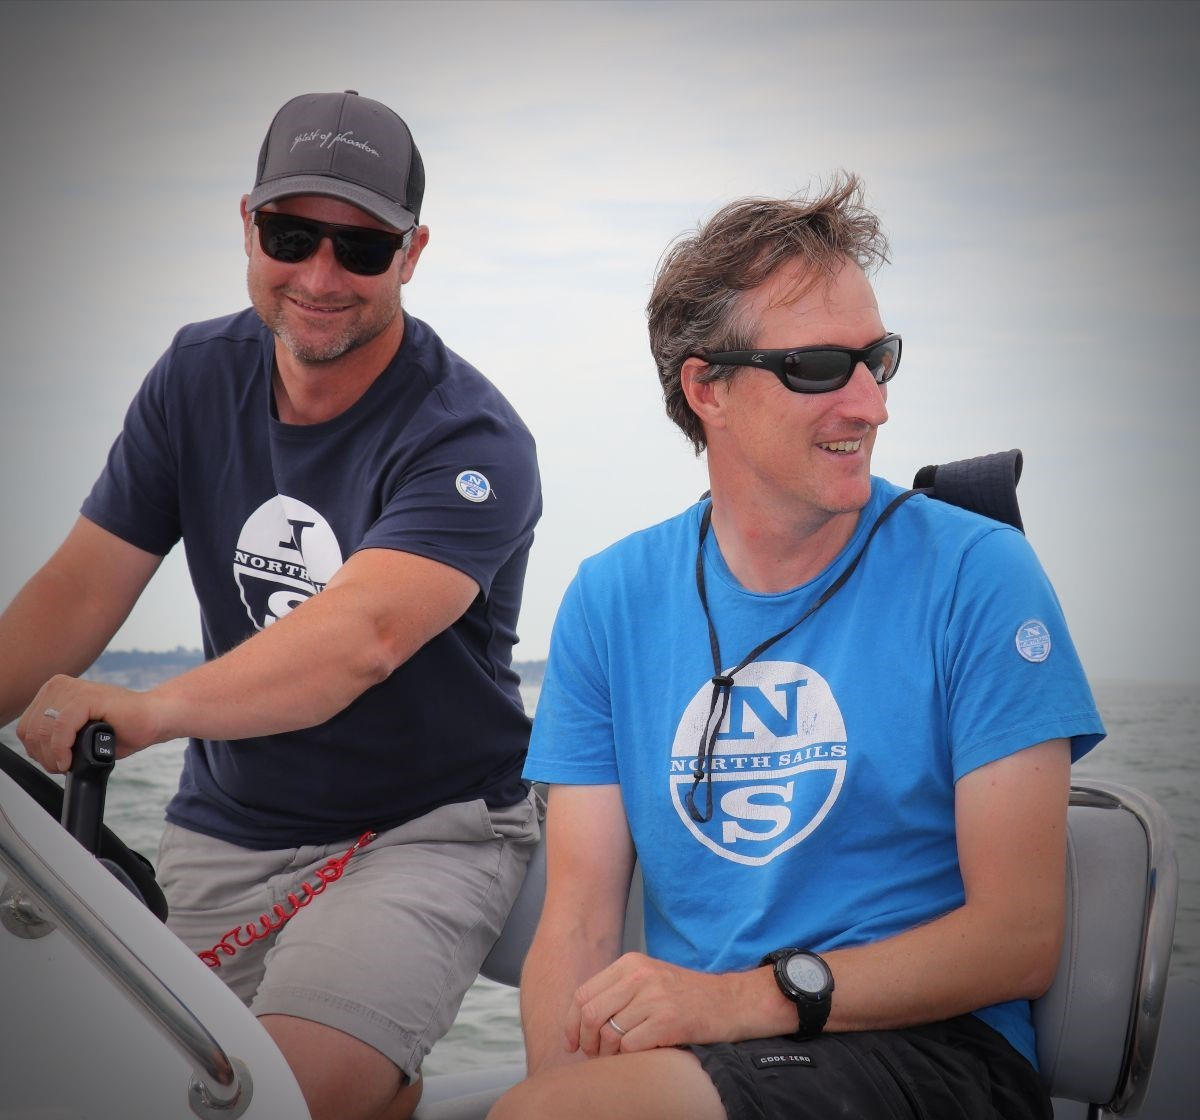 World class sailors Dave Lenz and Ronan Grealish were out on the water offering top tips and tricks via WhatsApp to all of the fleet from North Sails Coaching.